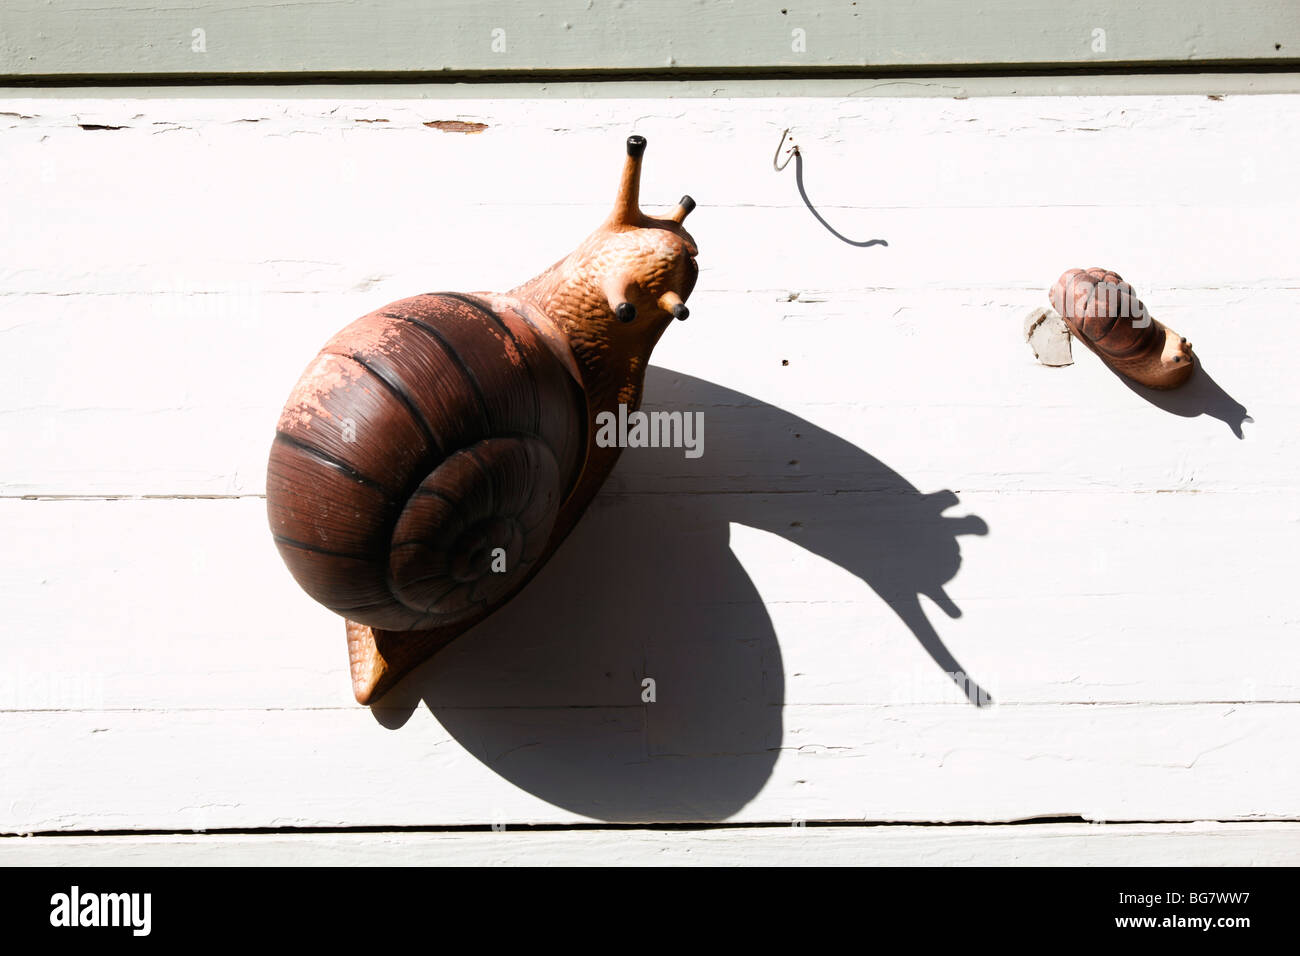 Finland, Southern Finland, Eastern Uusimaa, Porvoo, Snails Decorating Wooden Wall - Stock Image